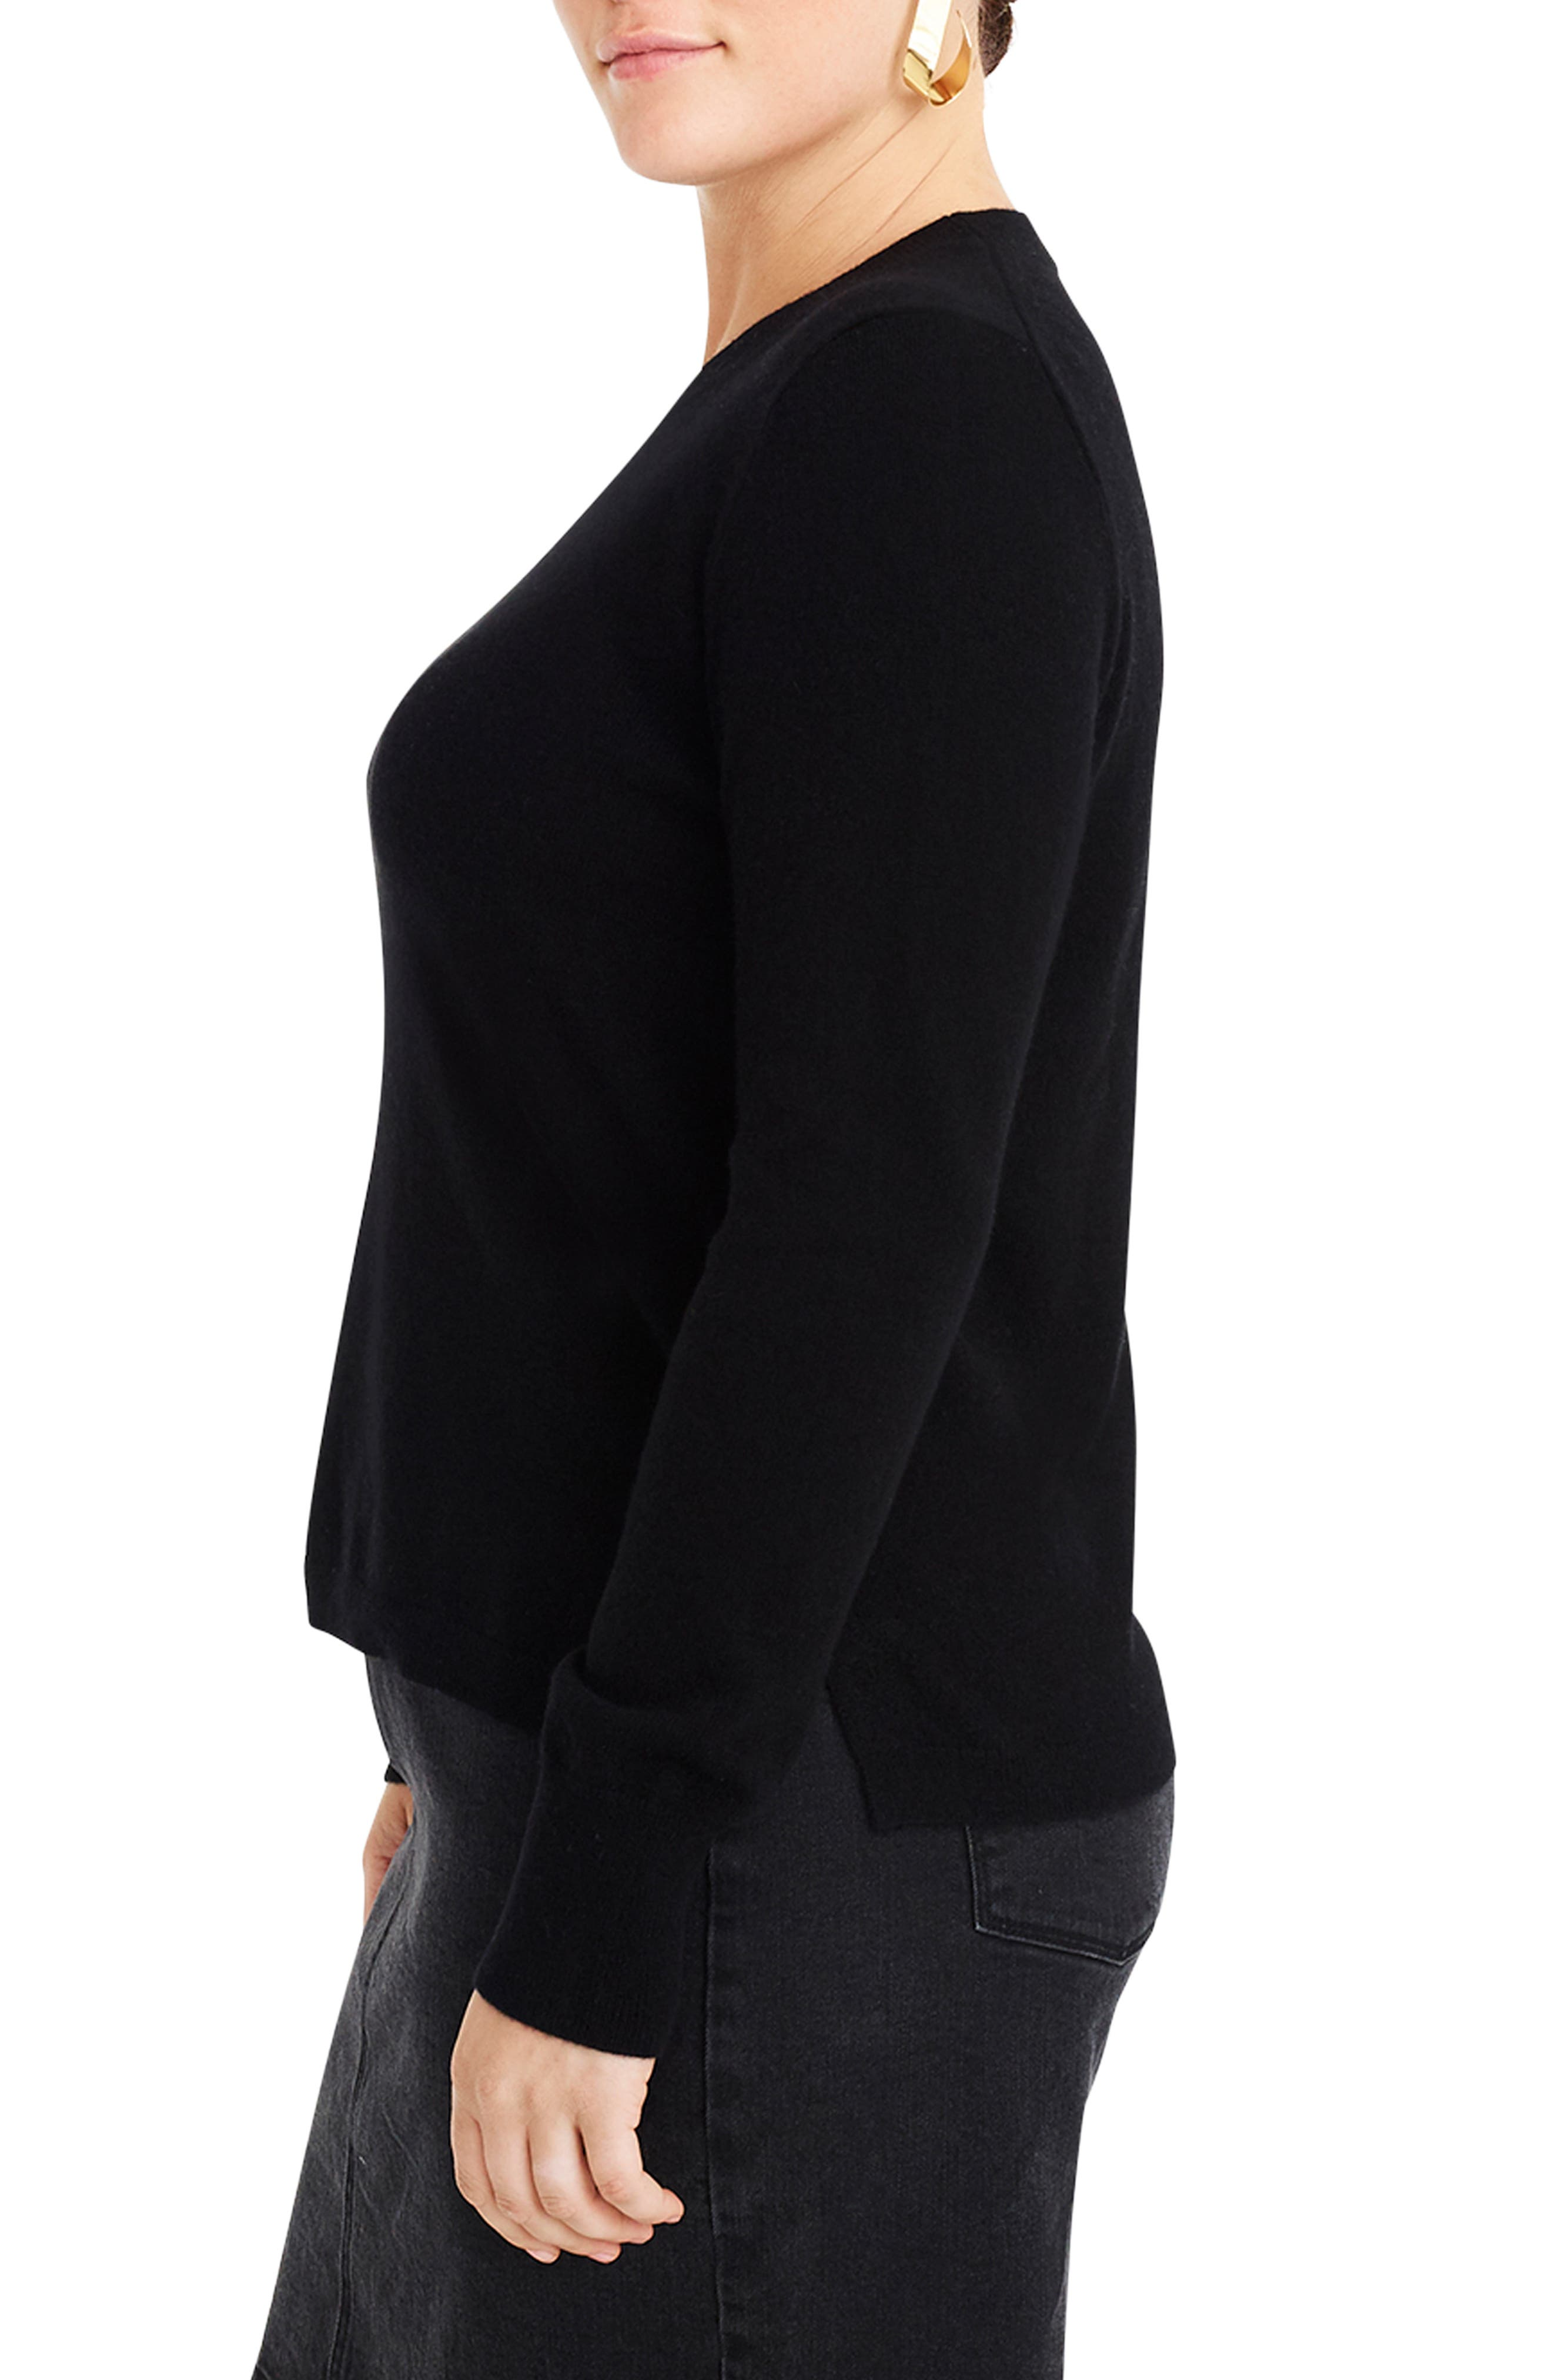 J.CREW,                             Crewneck Cashmere Sweater,                             Alternate thumbnail 5, color,                             BLACK